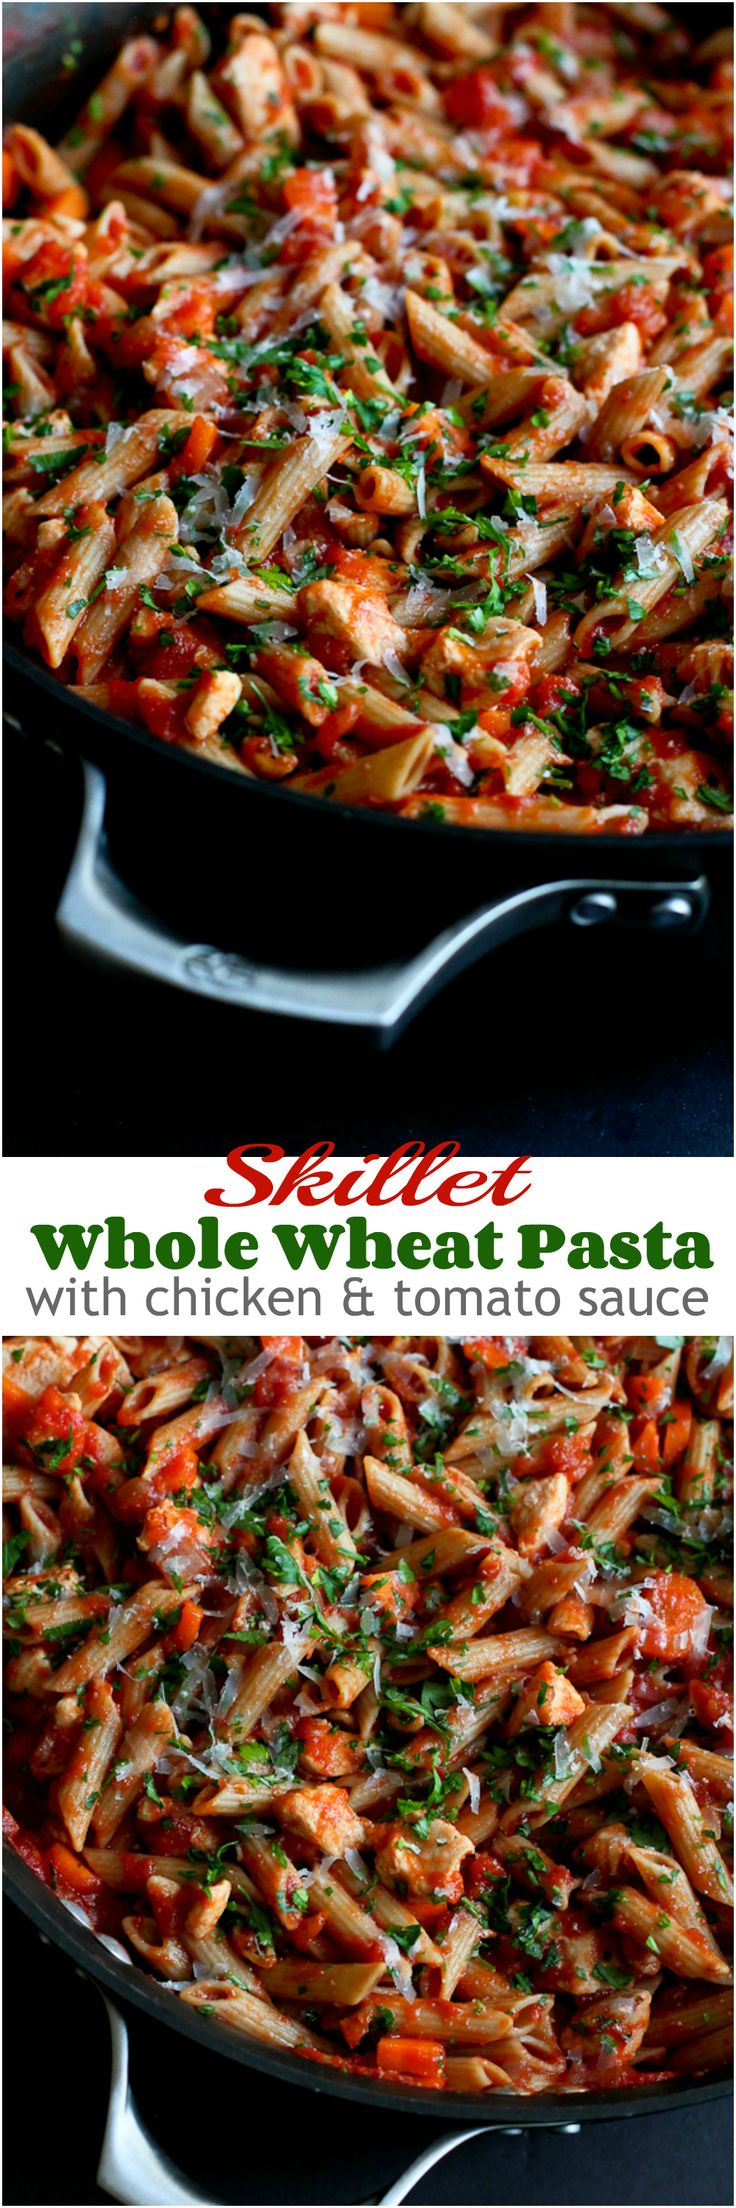 Skillet Whole Wheat Pasta with Chicken and Tomato Sauce…30 minute dinner!  240 calories and 6 Weight Watchers PP | cookincanuck.com #recipe #healthy